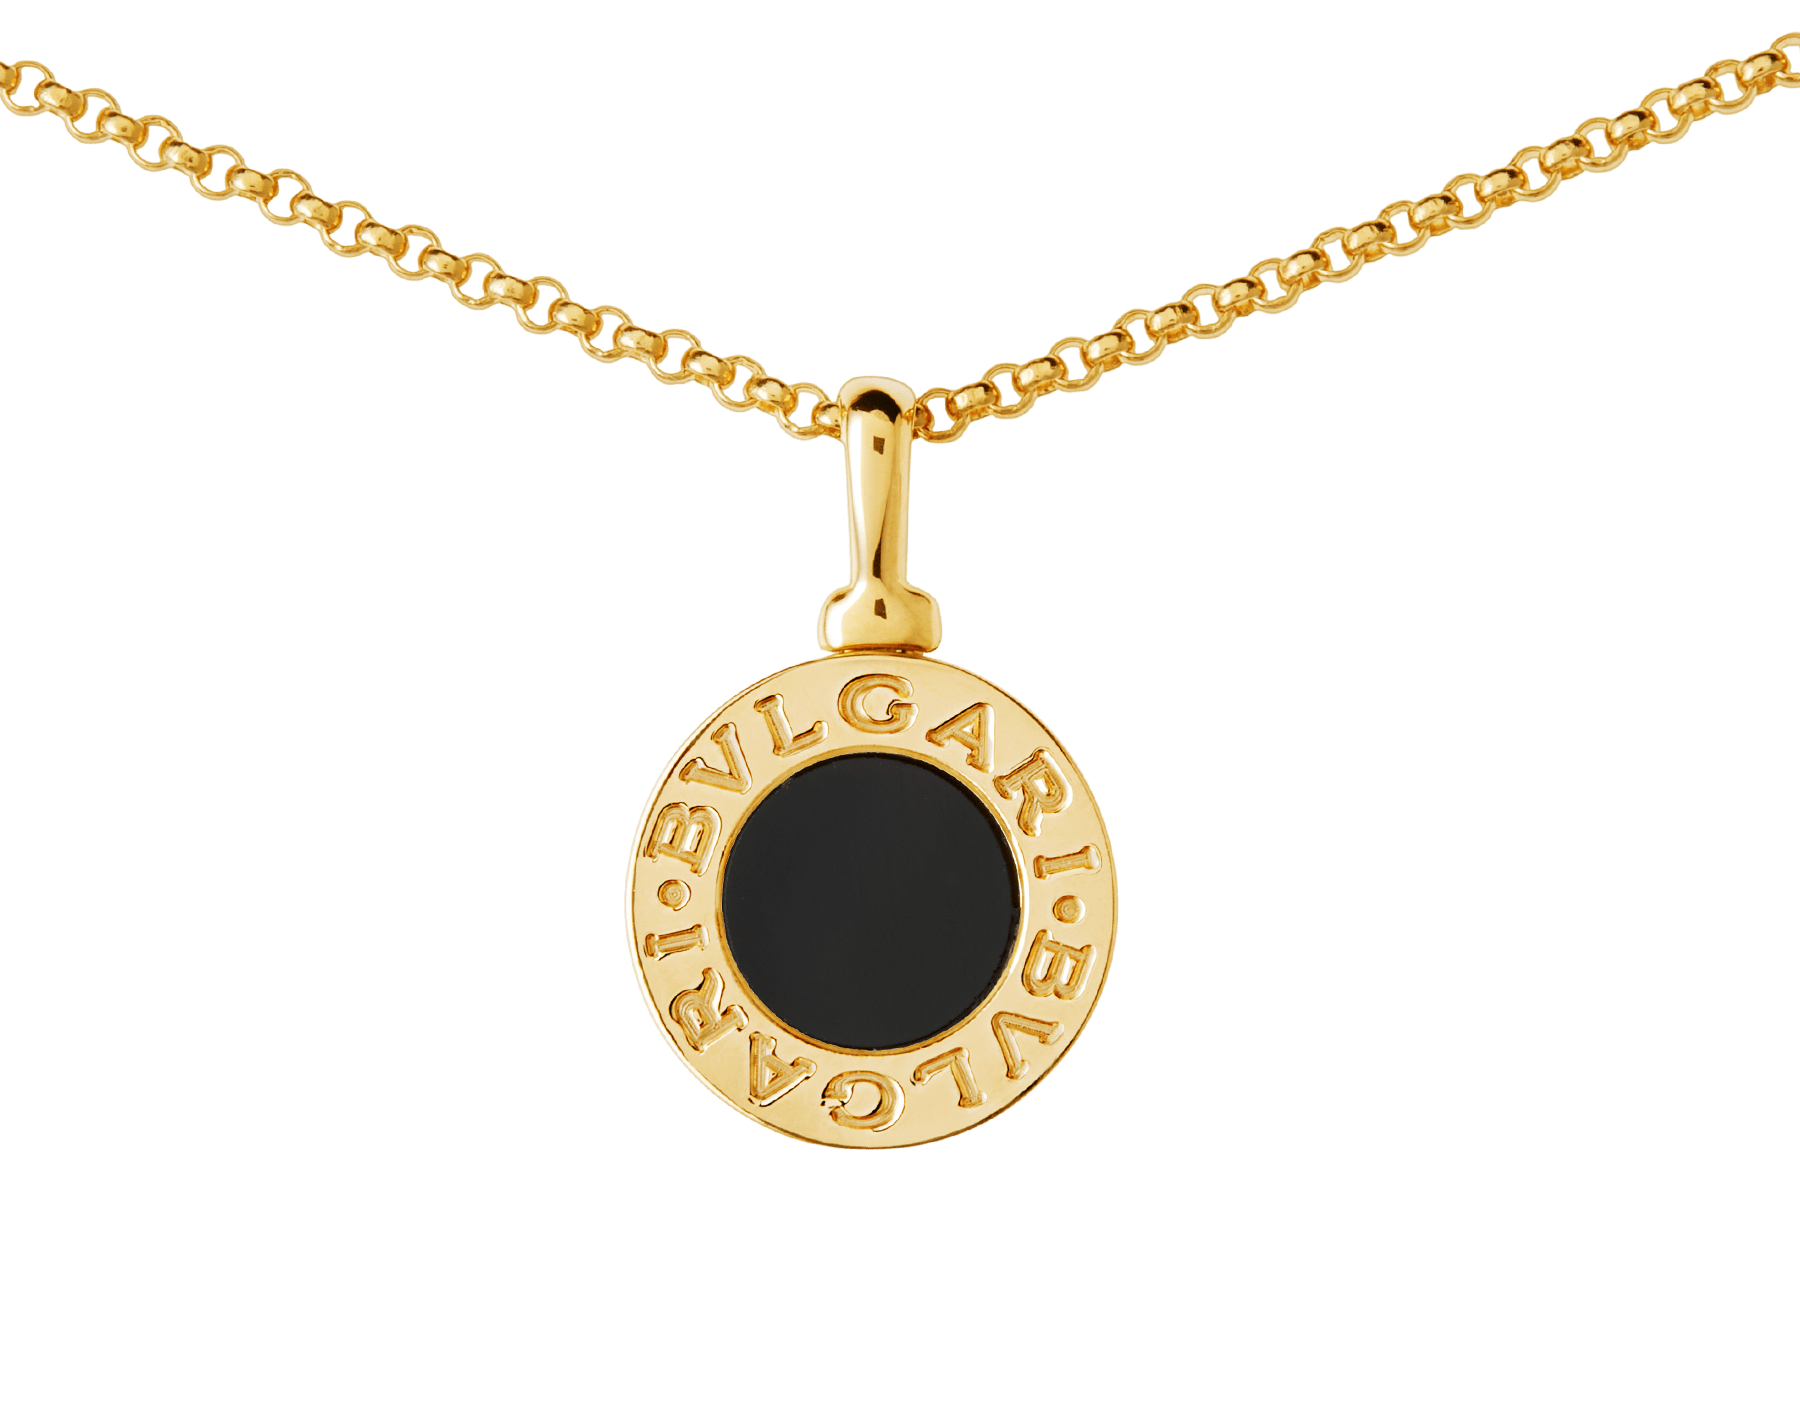 BVLGARI BVLGARI necklace with 18 kt yellow gold chain and 18 kt yellow gold pendant set with onyx 350554 image 3